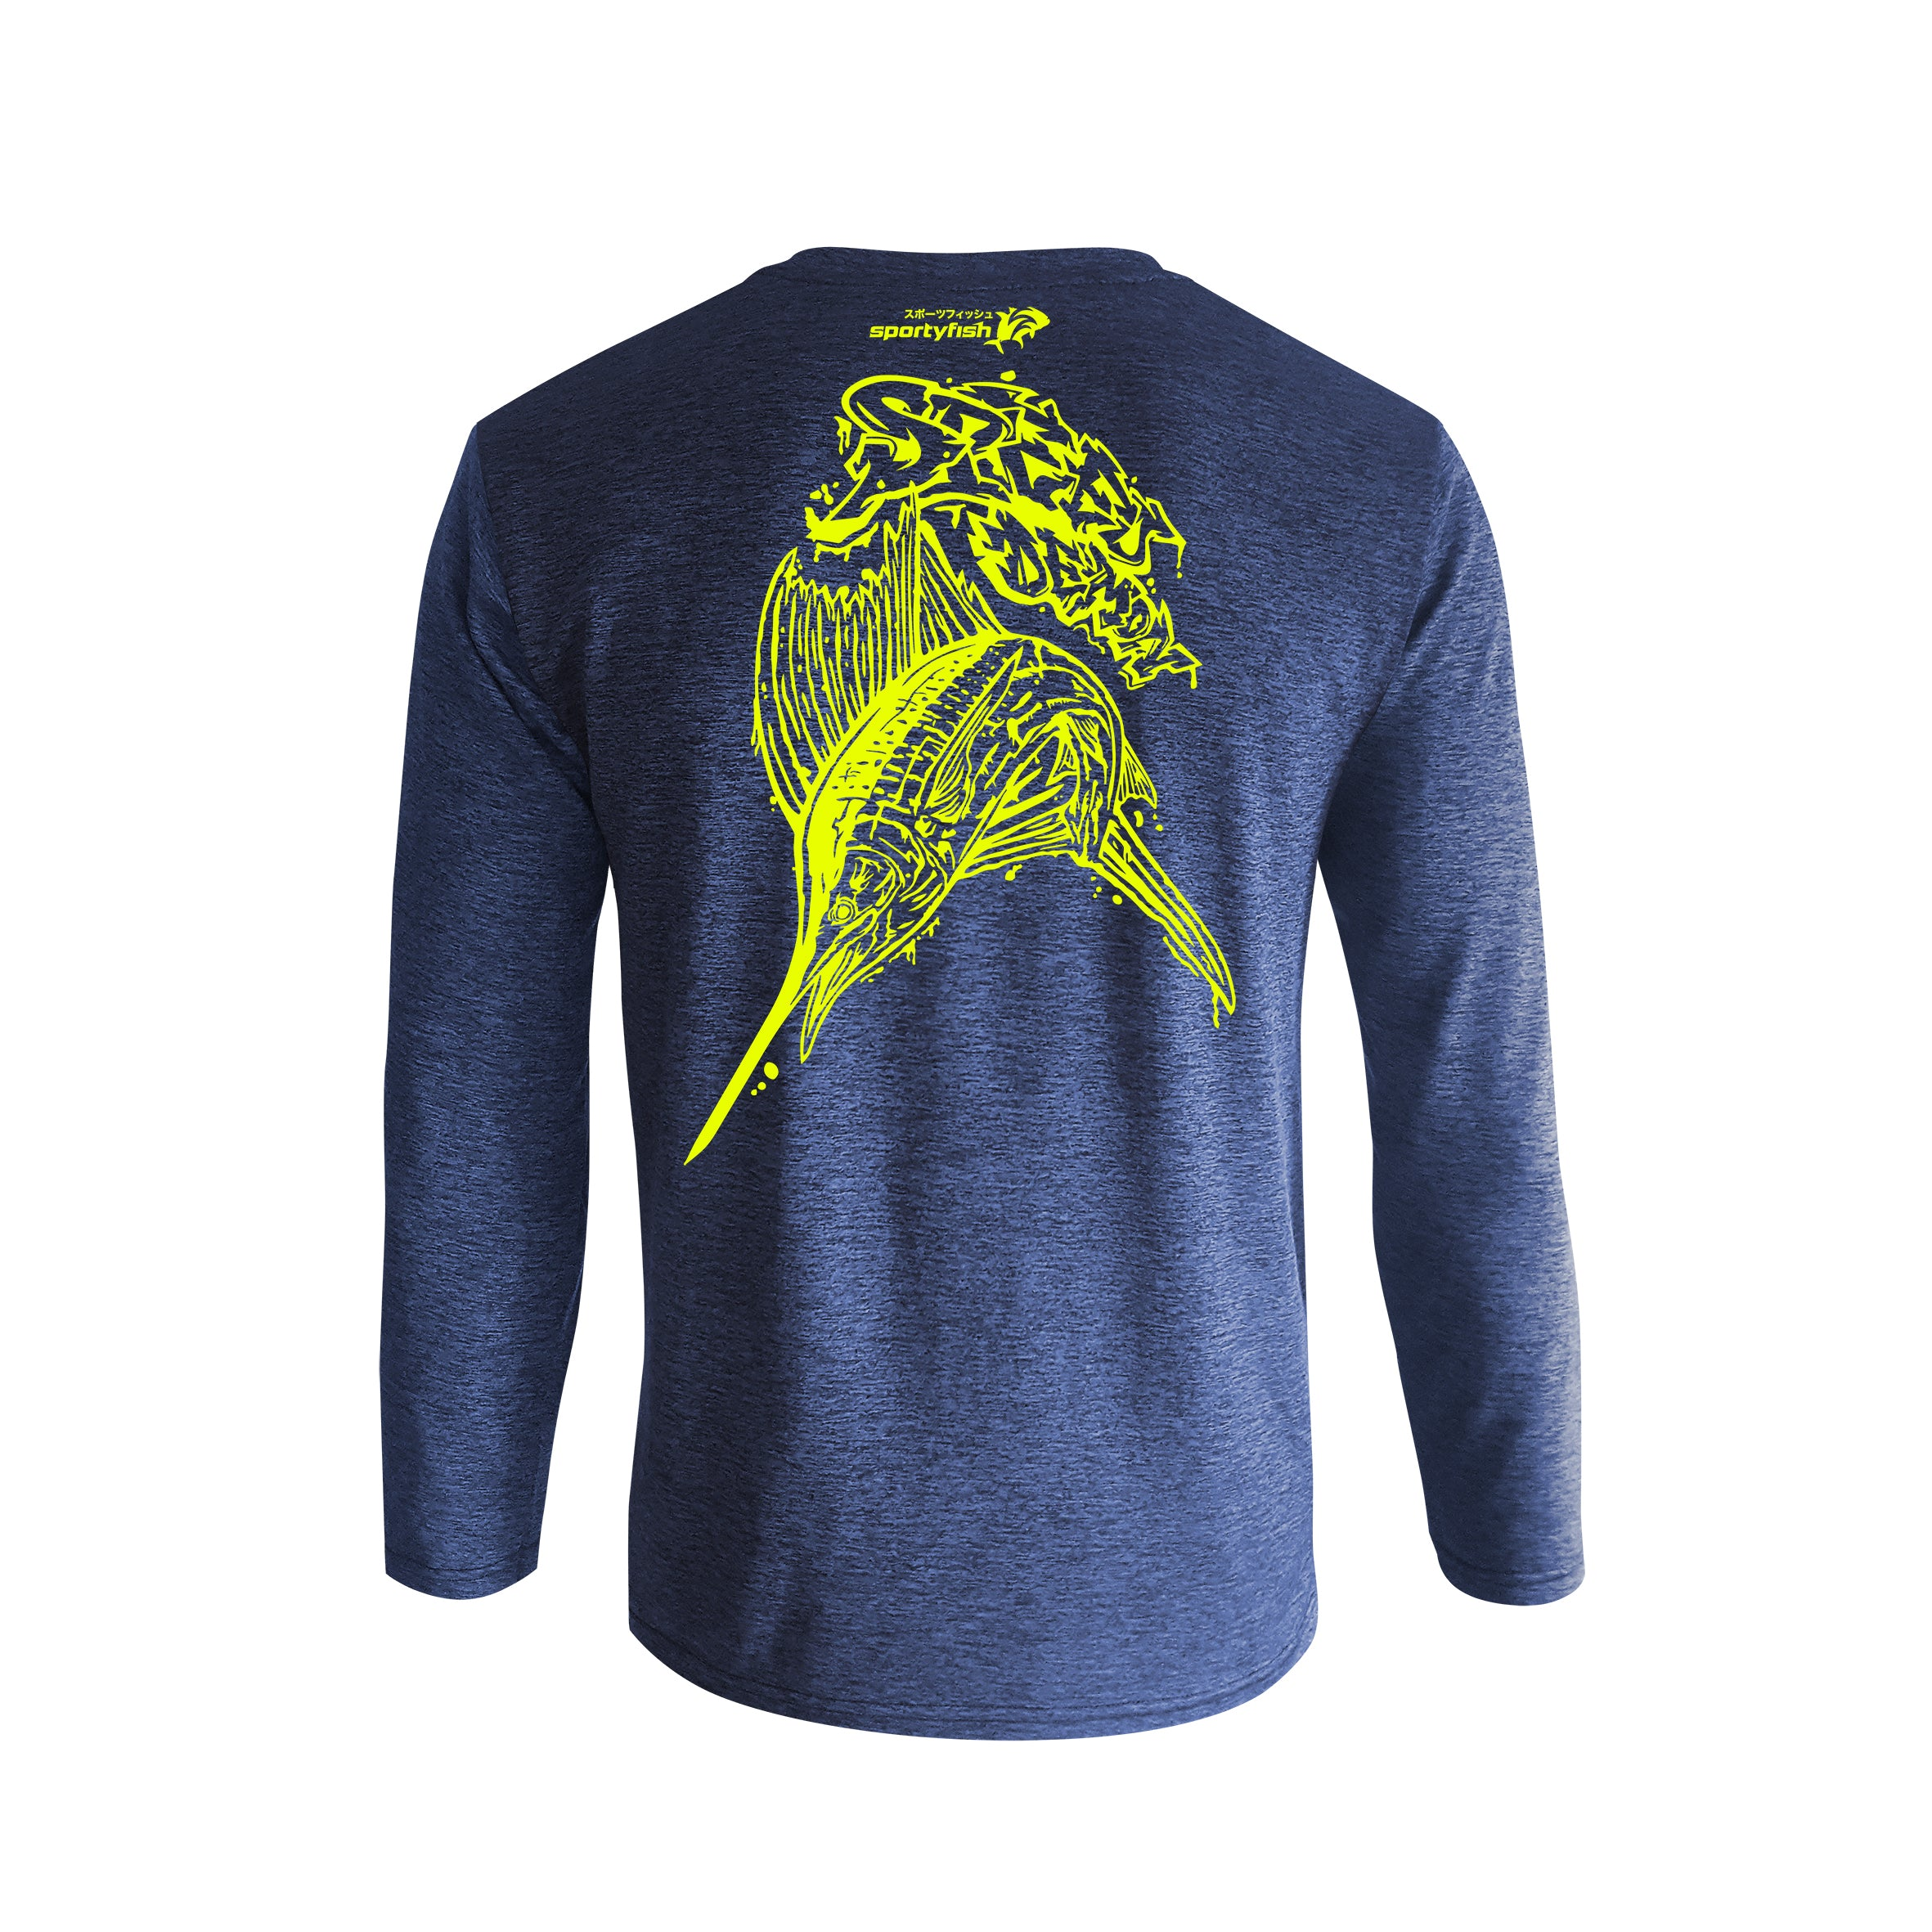 Wildstyle Graffiti Series Blue Long-sleeves T-shirt(back view)Neon Yellow: Atlantic Sailfish